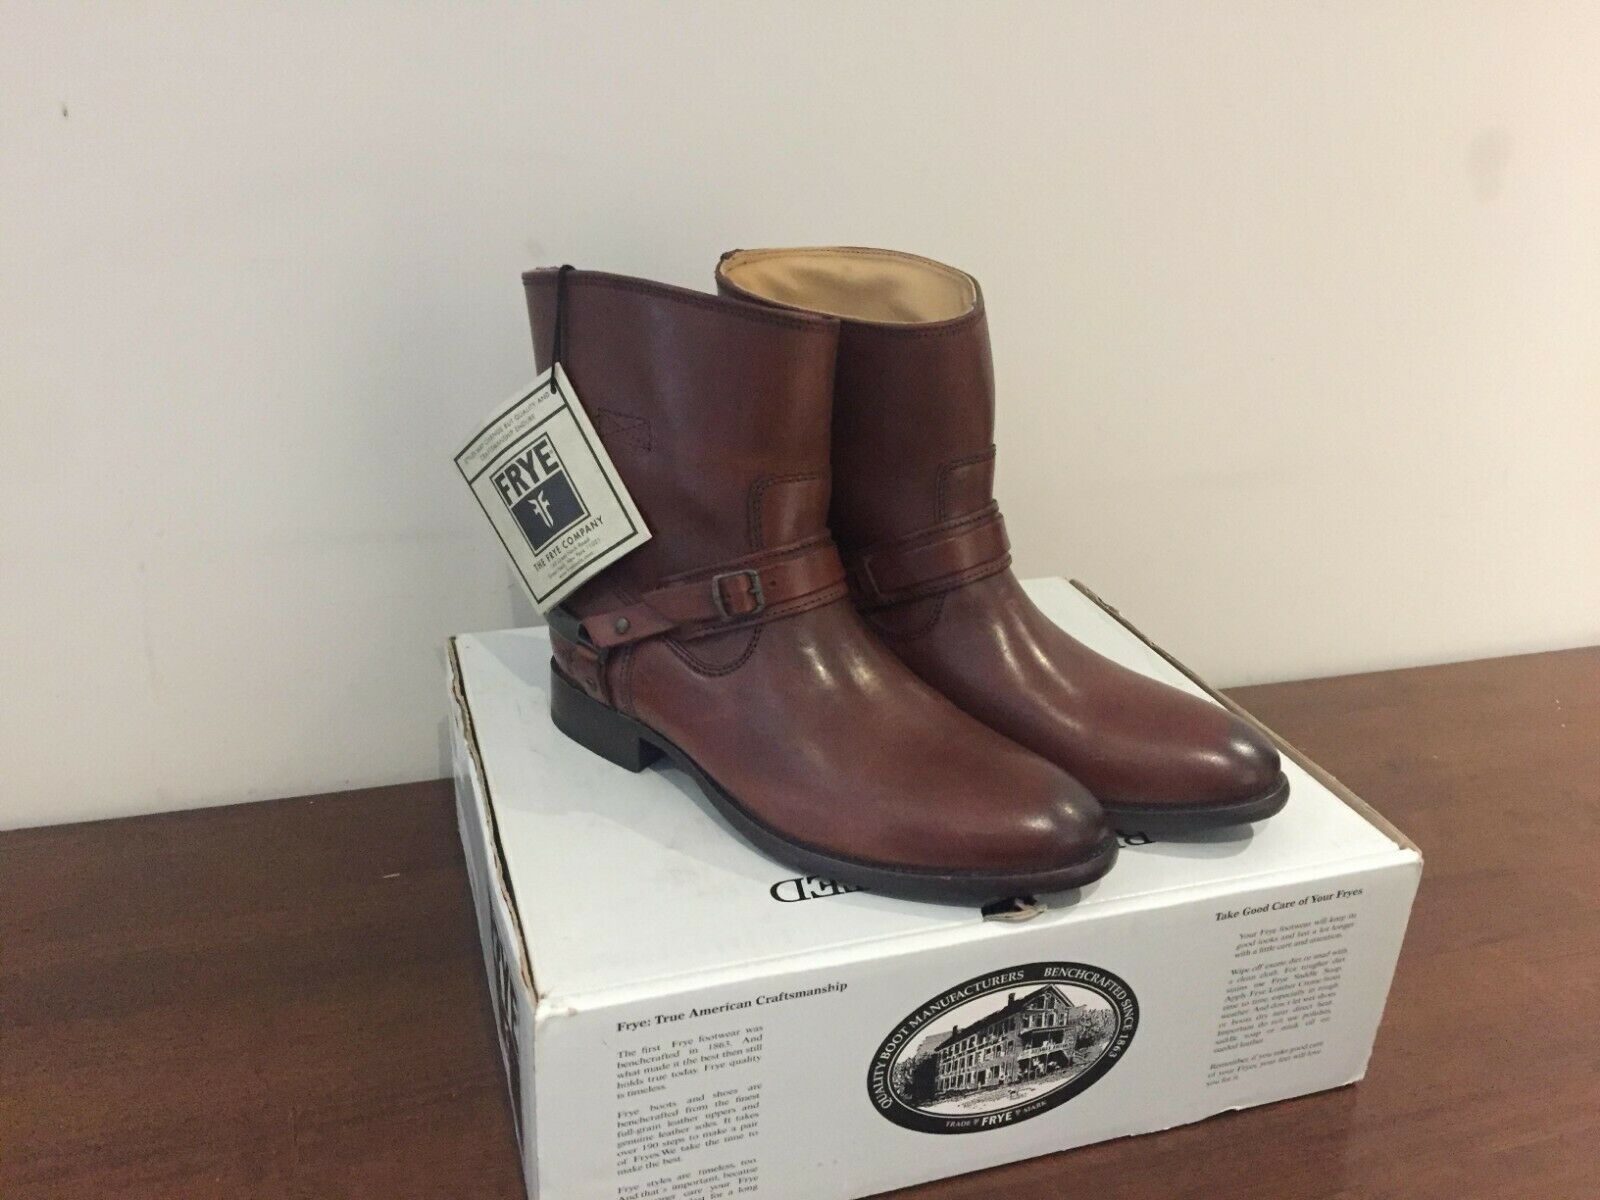 New FRYE Women's Lindsay Spur Short Boot Redwood Leather shoes Size 40 (UK7)